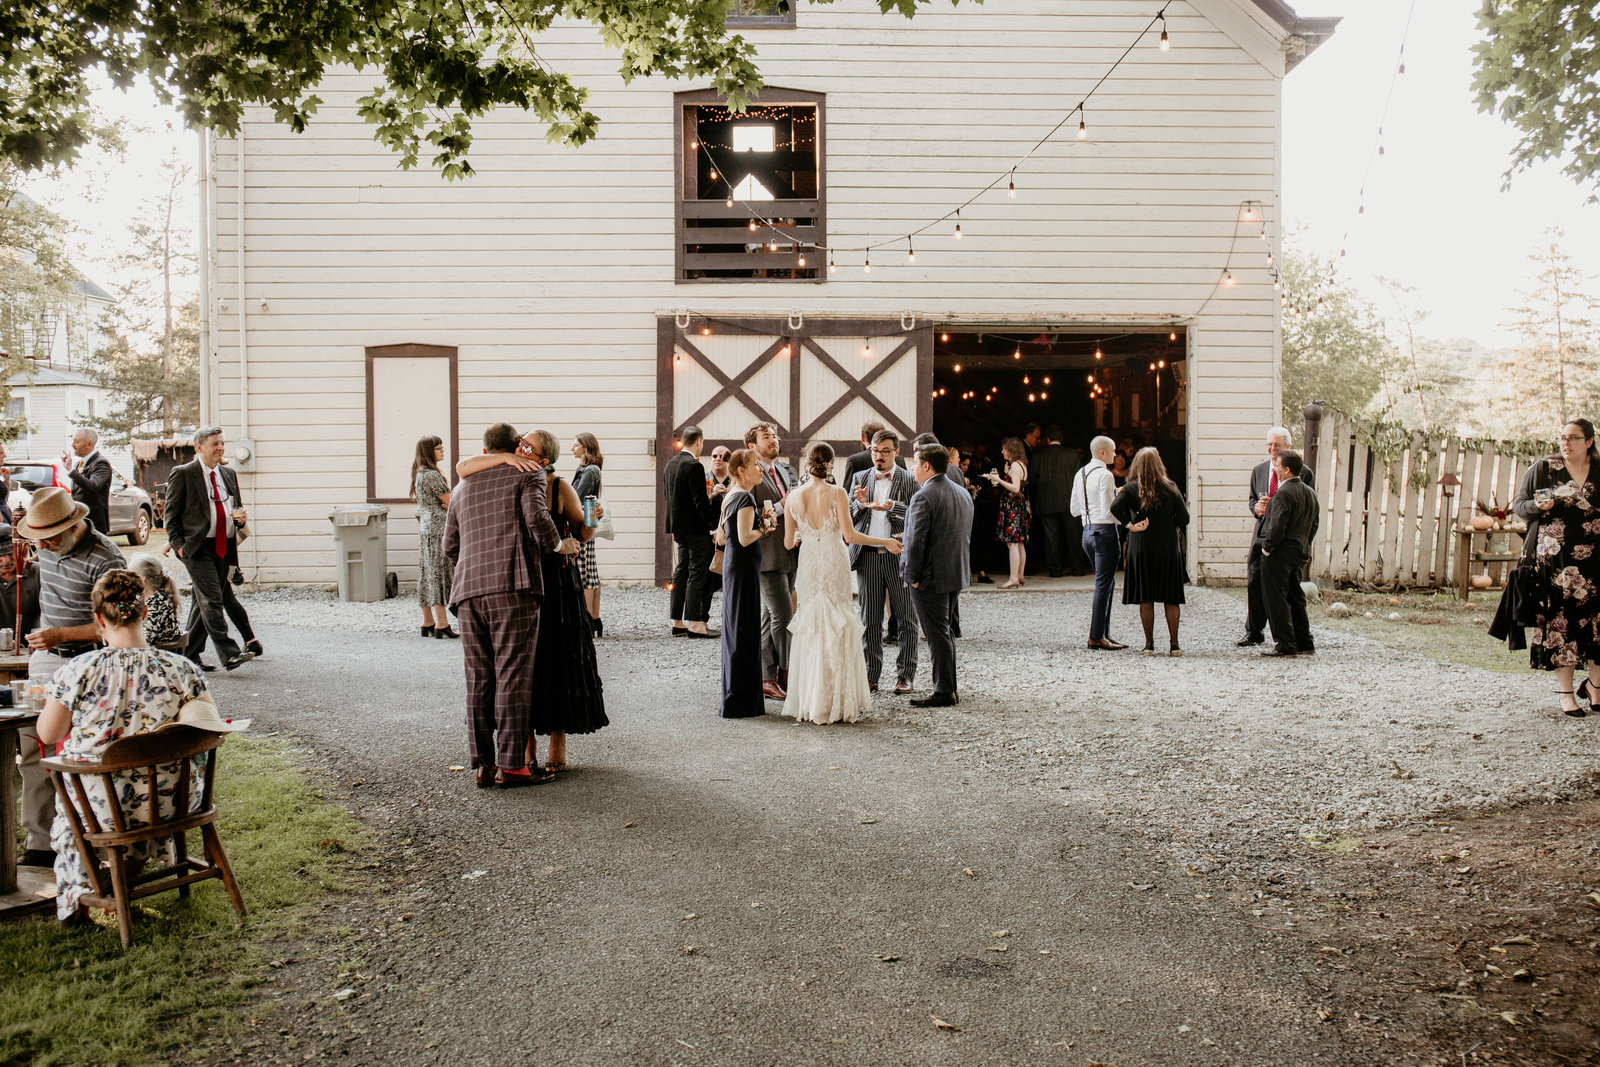 Barn wedding reception in Catskill, New York.